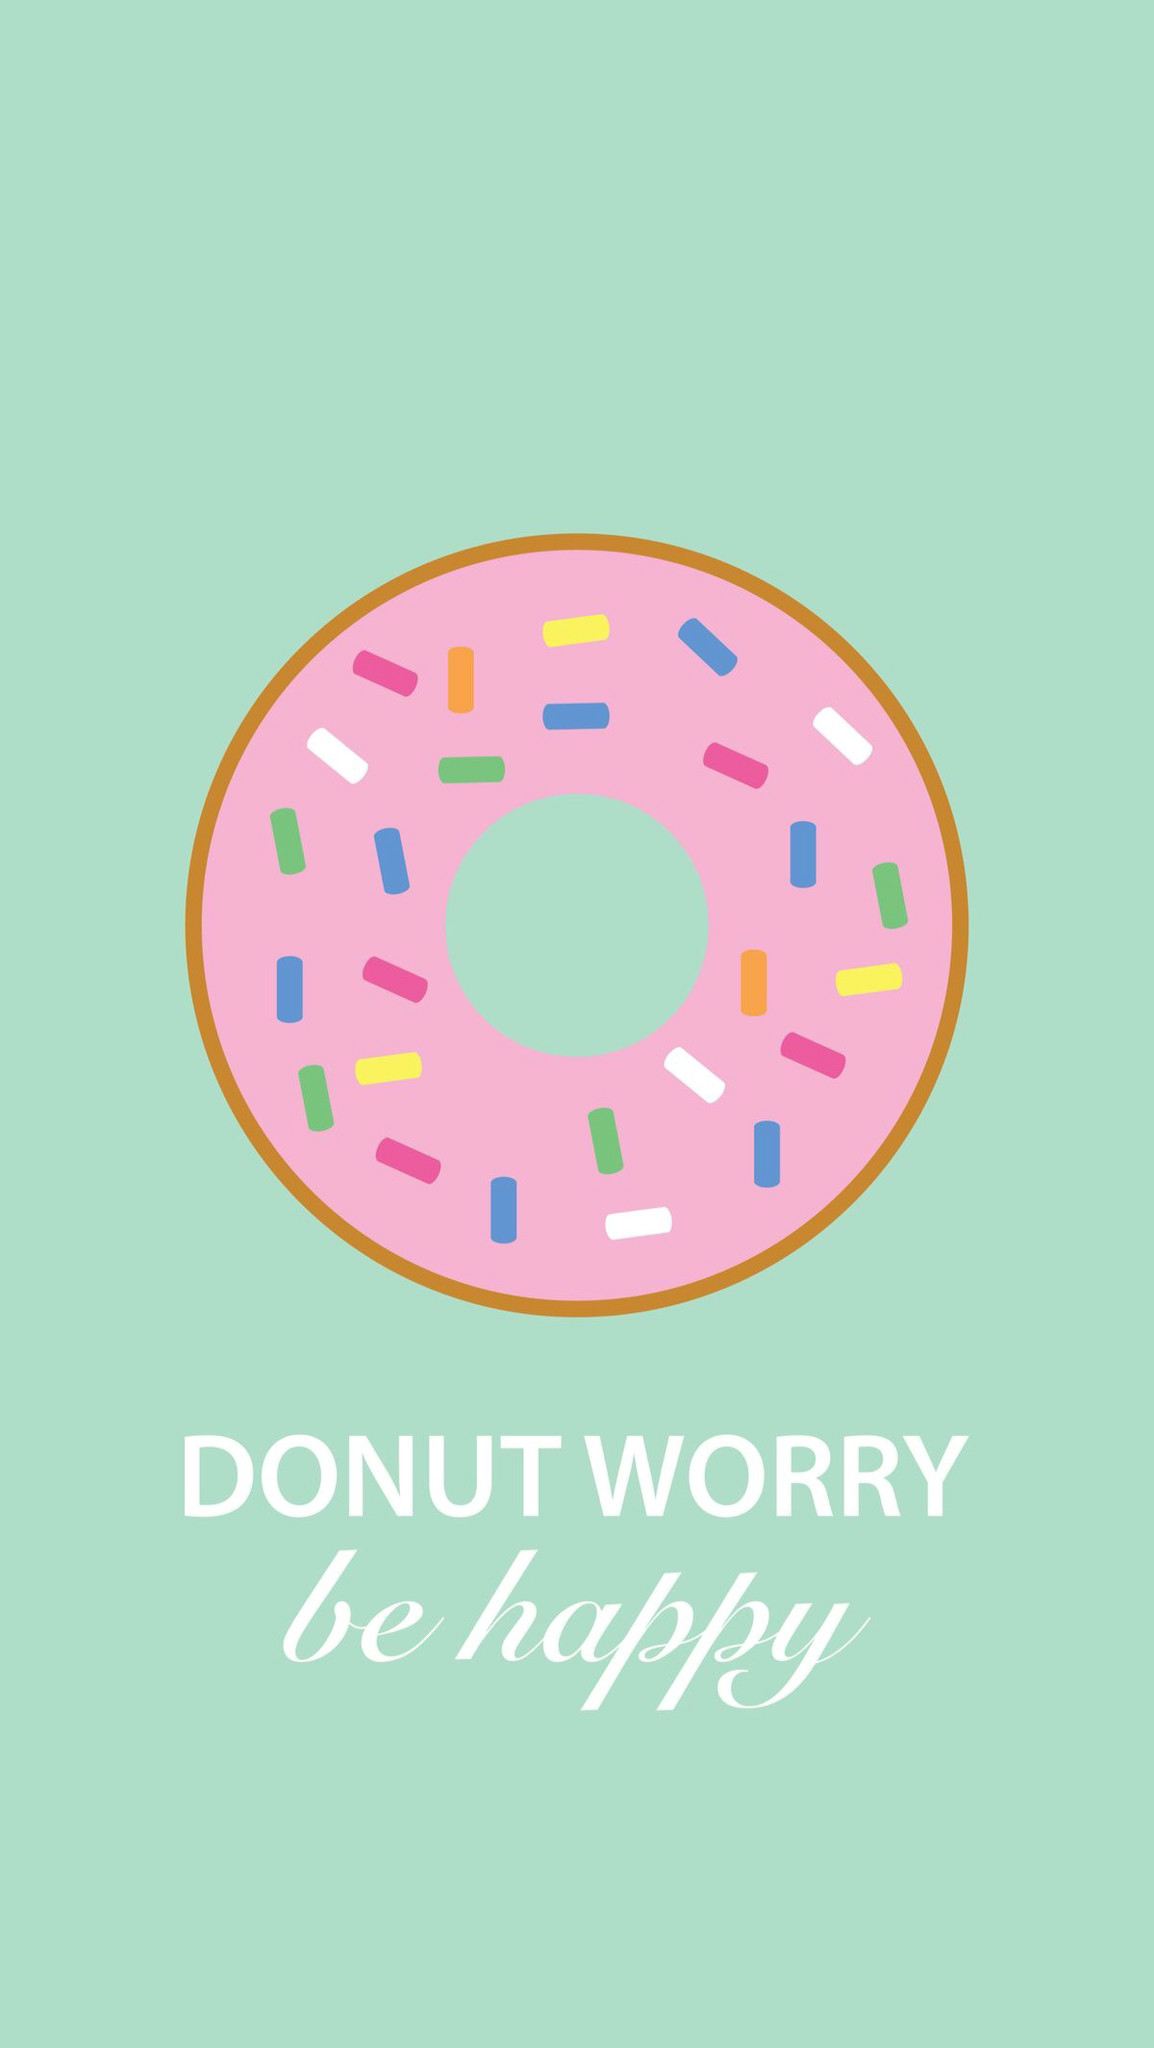 Donut Worry ☆ Find more Cute wallpapers for your +